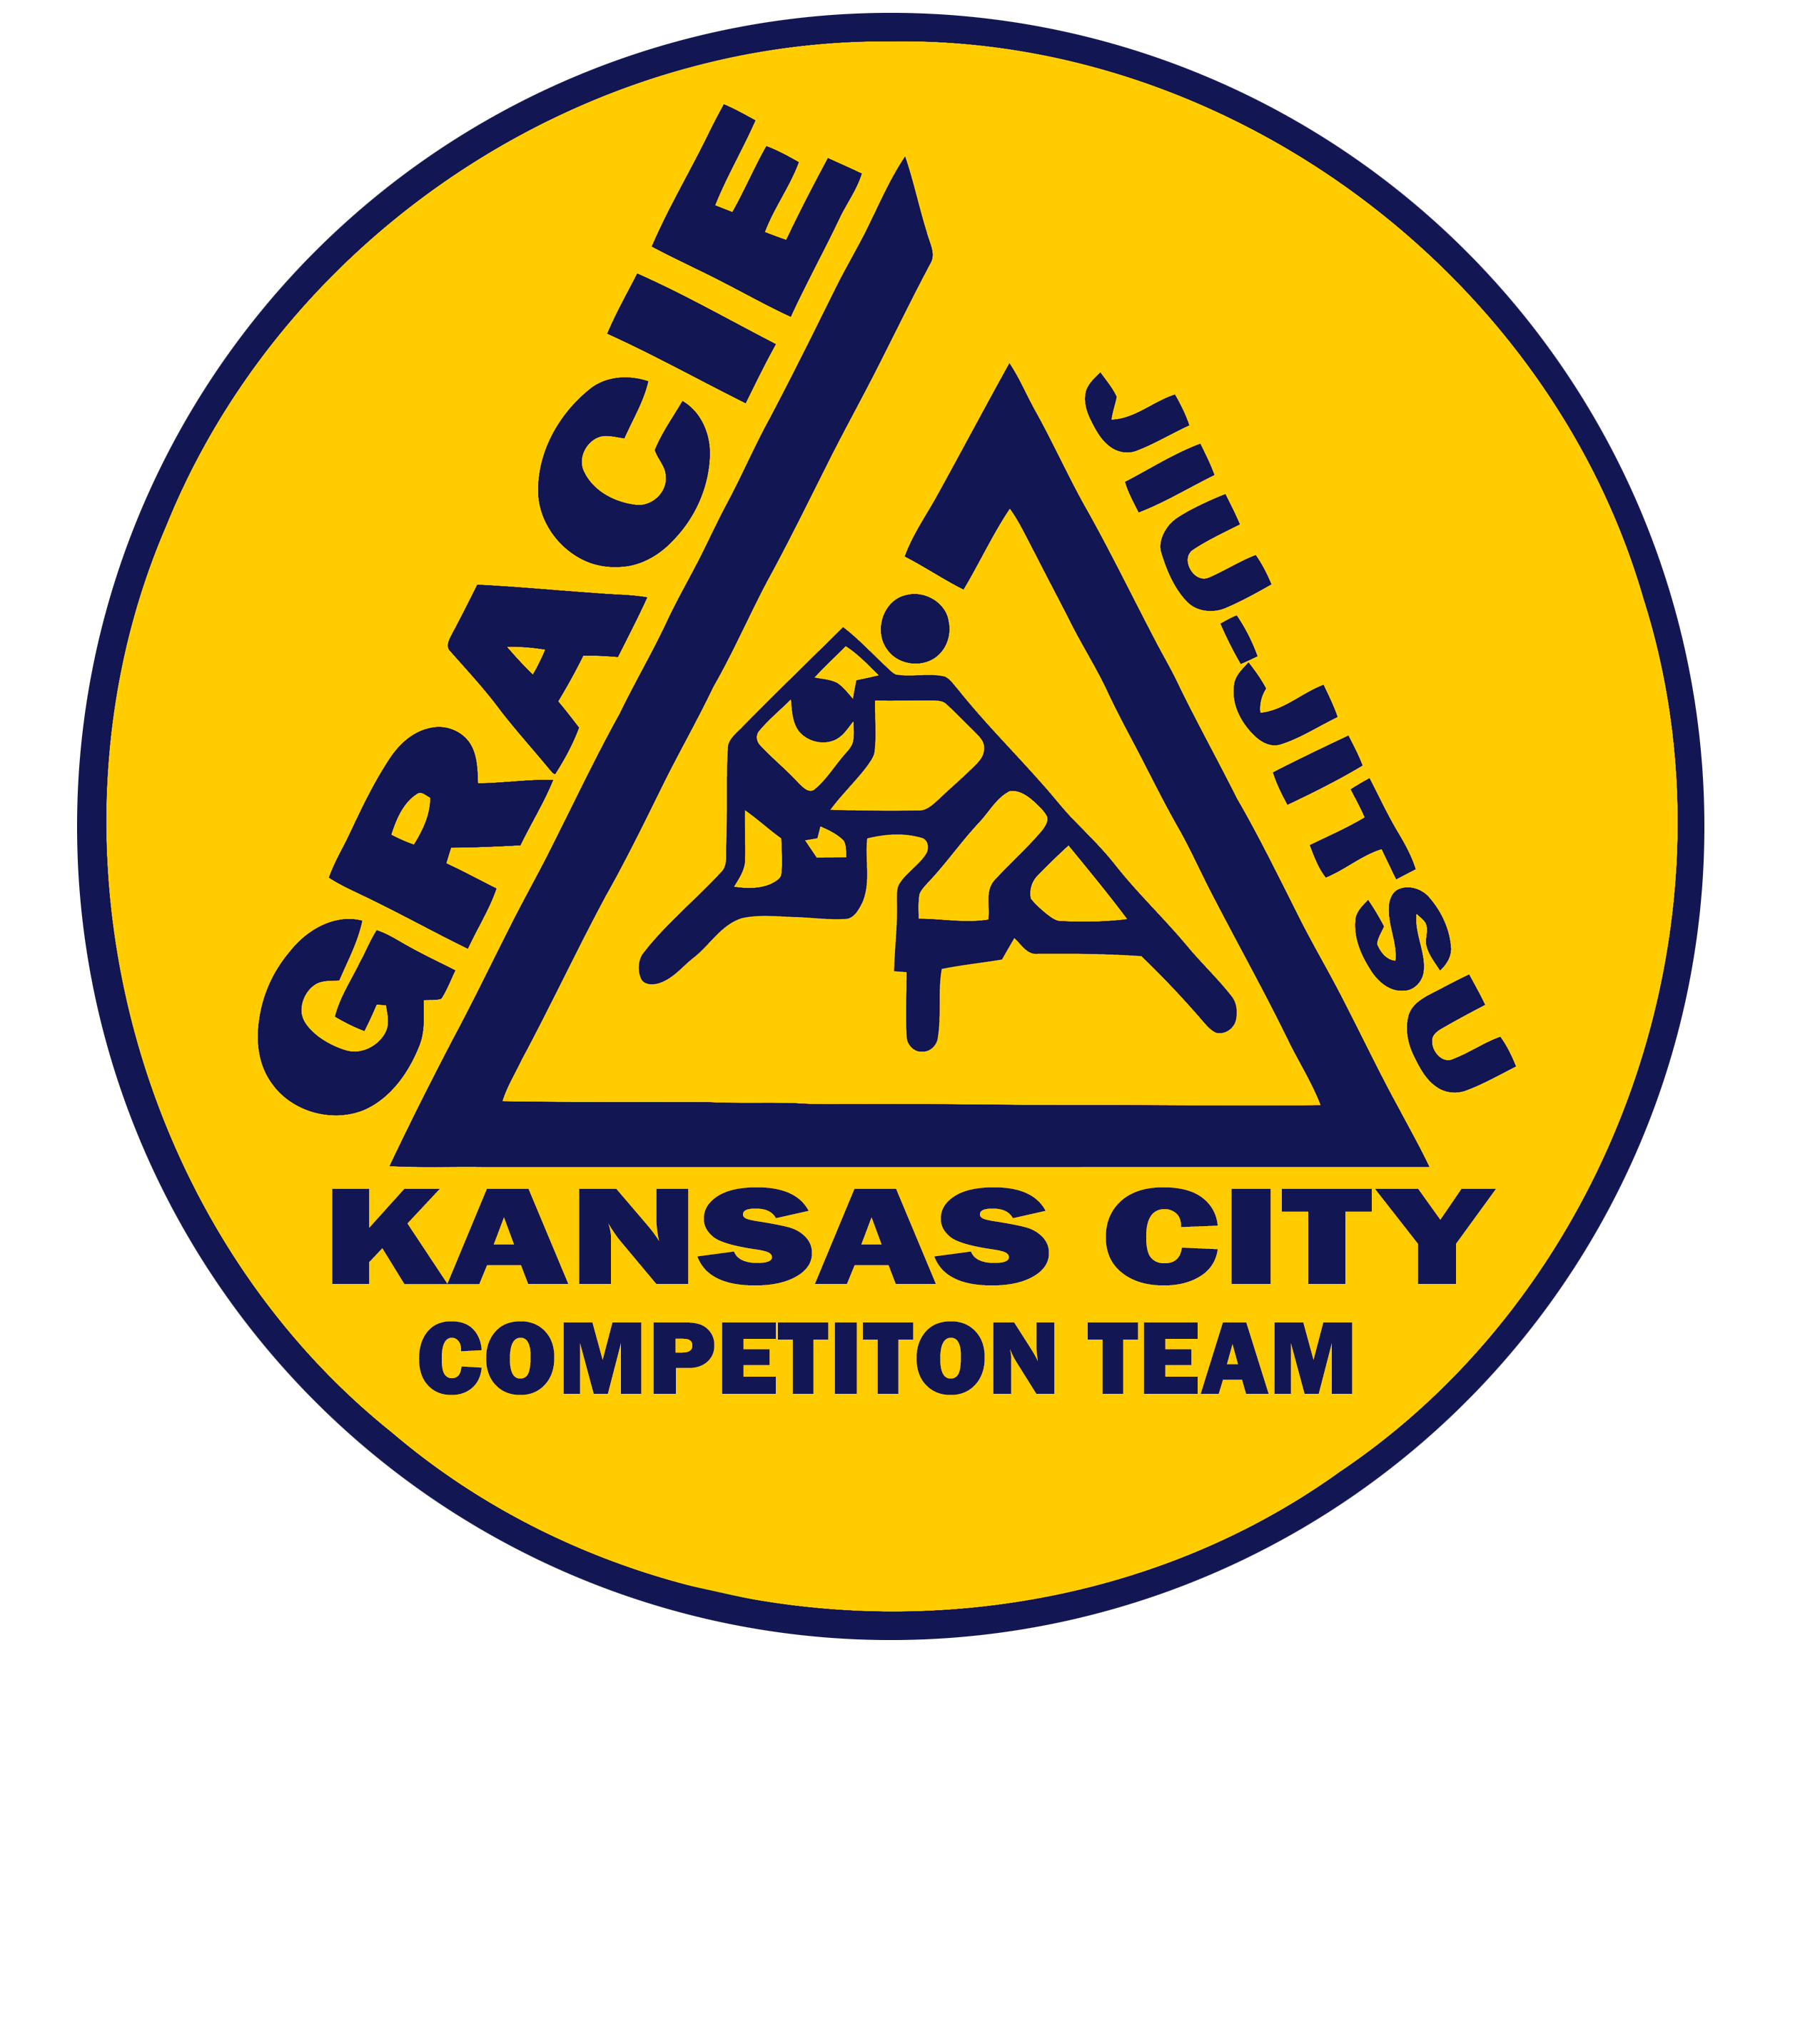 Free MMA Gym and Jiu Jitsu Classes in Kansas City